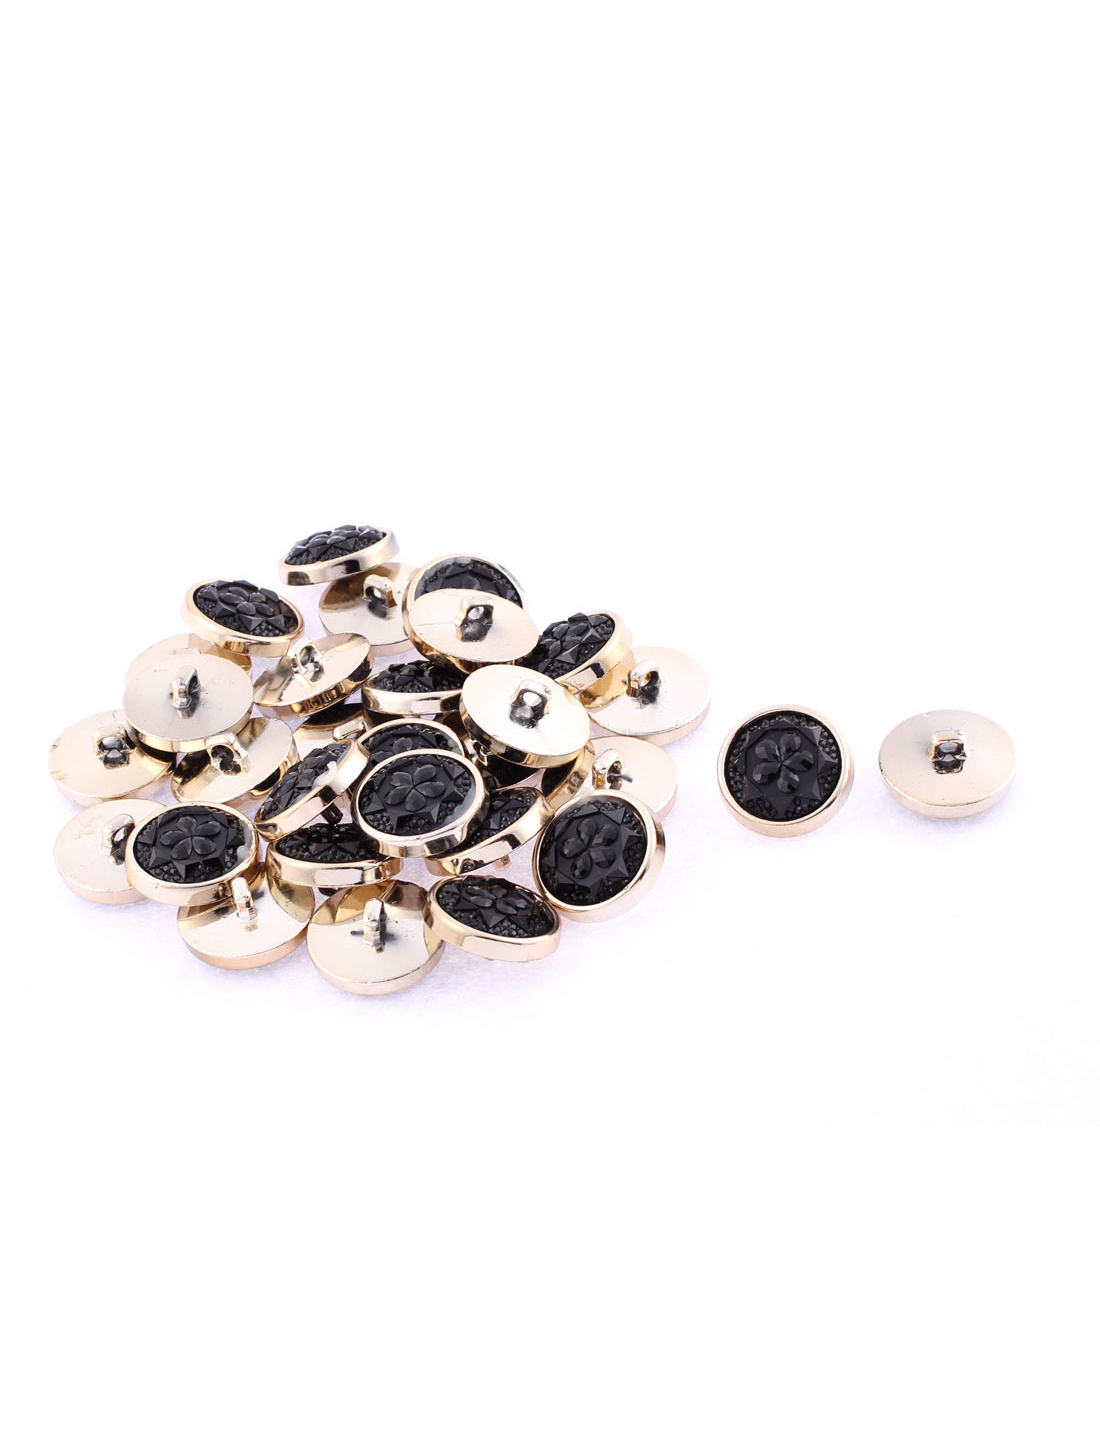 30 Pcs Round Floral Pattern Sewing Buttons 25mm Dia Black for Clothes Coat Jacket